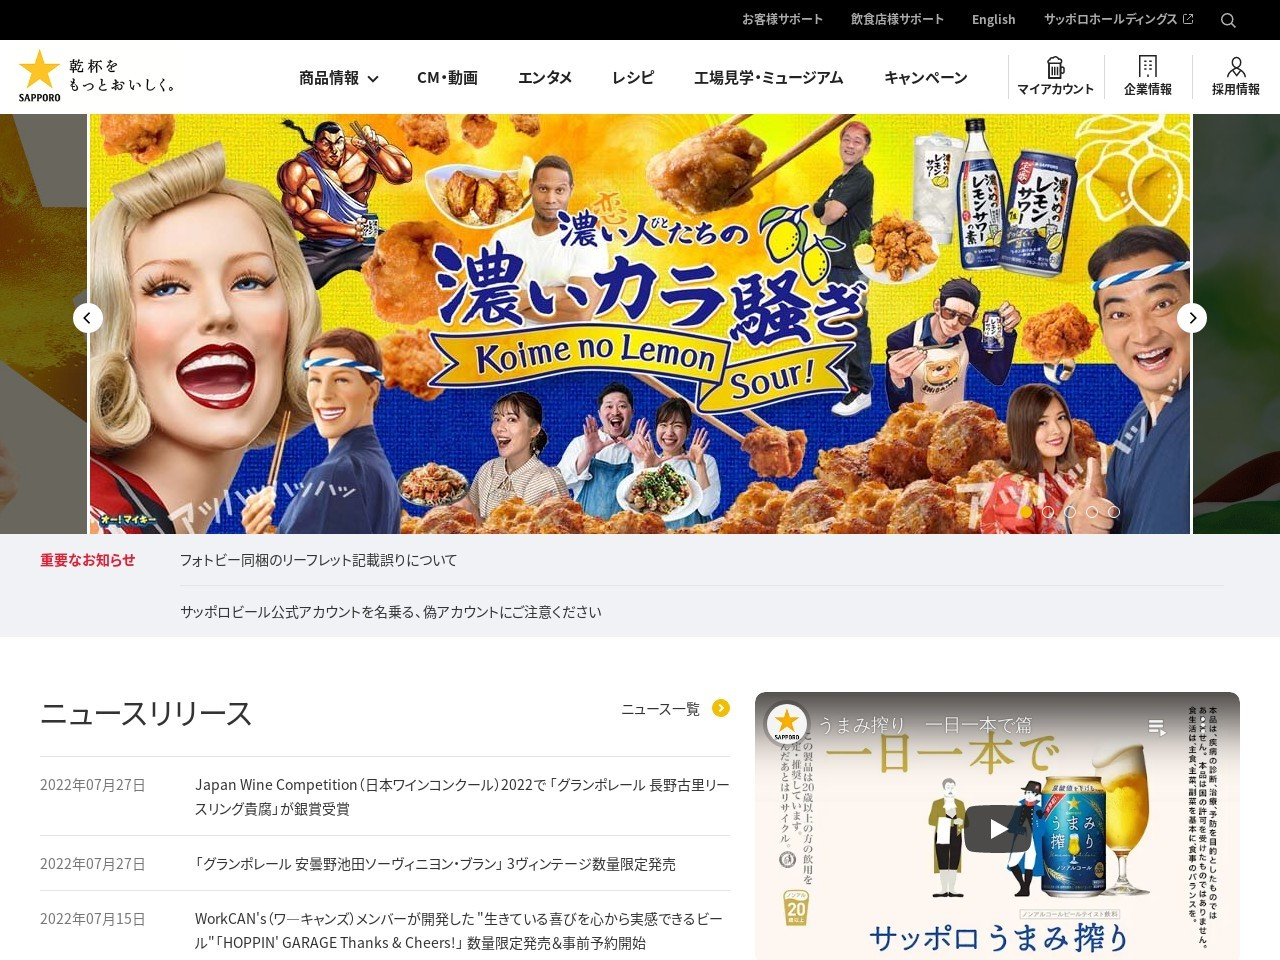 http://www.sapporobeer.jp/shochu/muginowa/campaign/index2.html